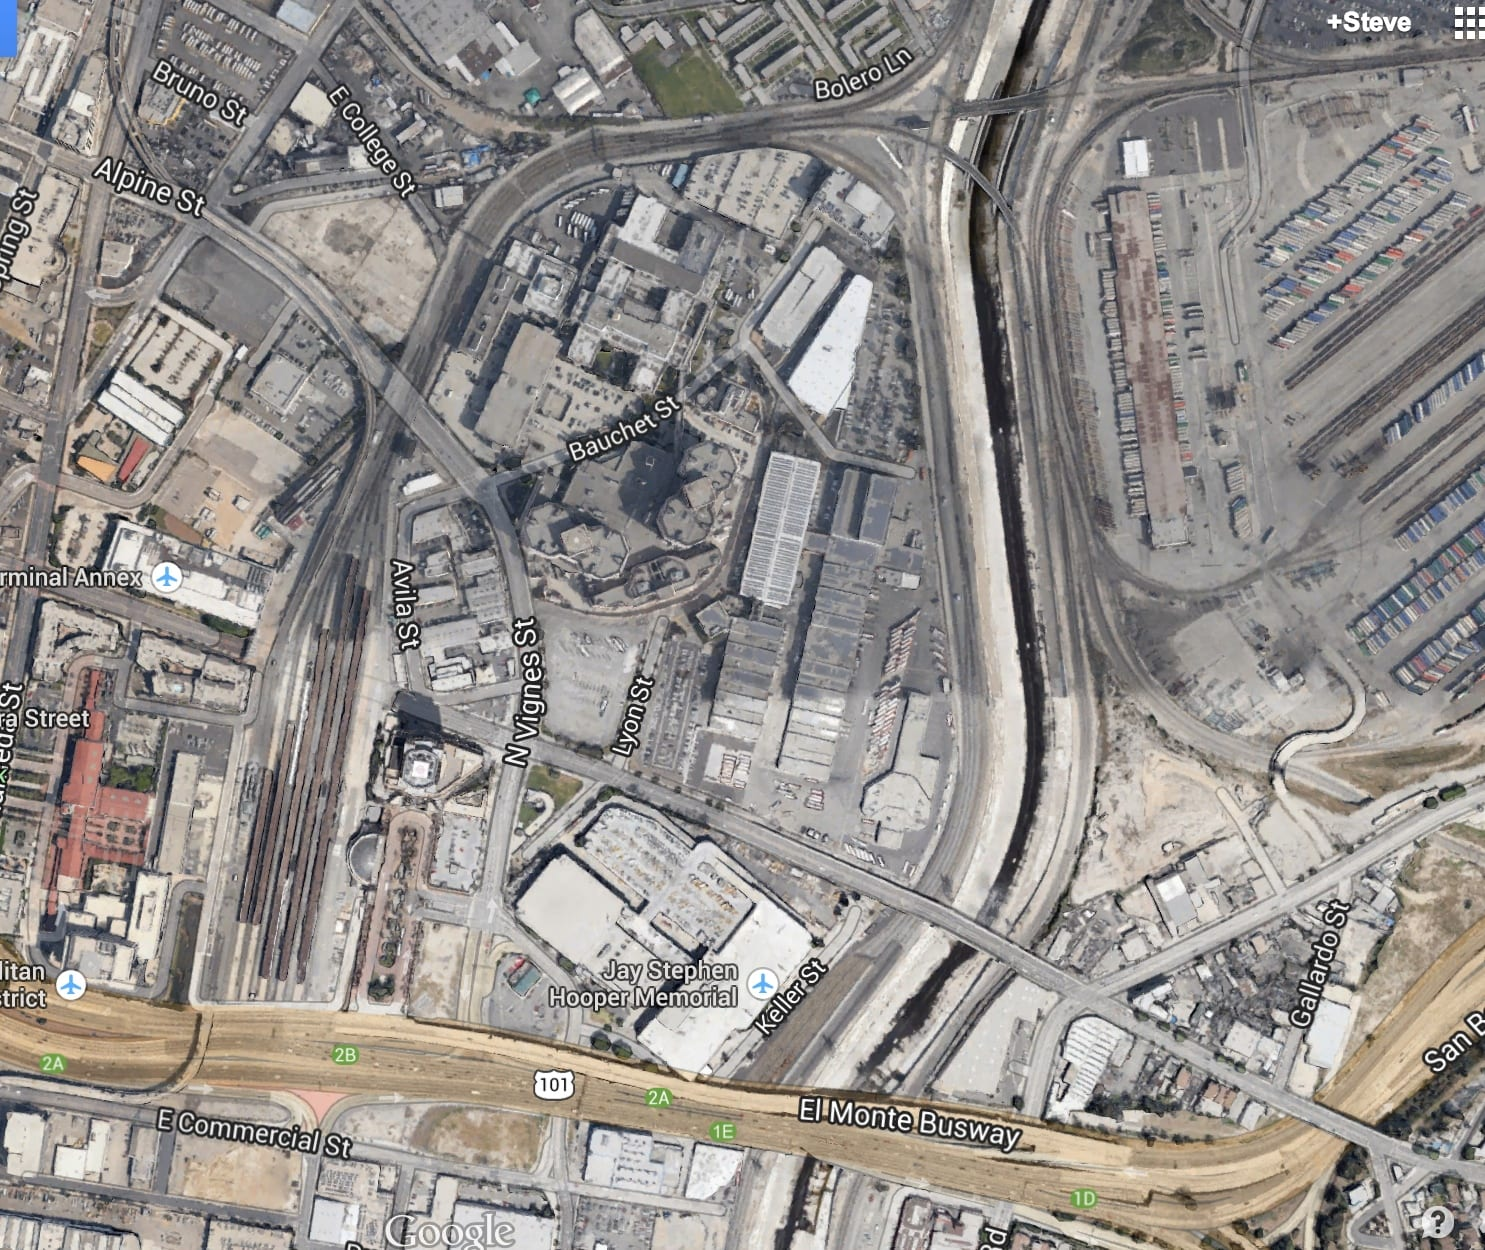 The project will extend tracks south from Union Station. Under the current setup, all trains must enter and exit the station from the north. Photo: Google Maps.